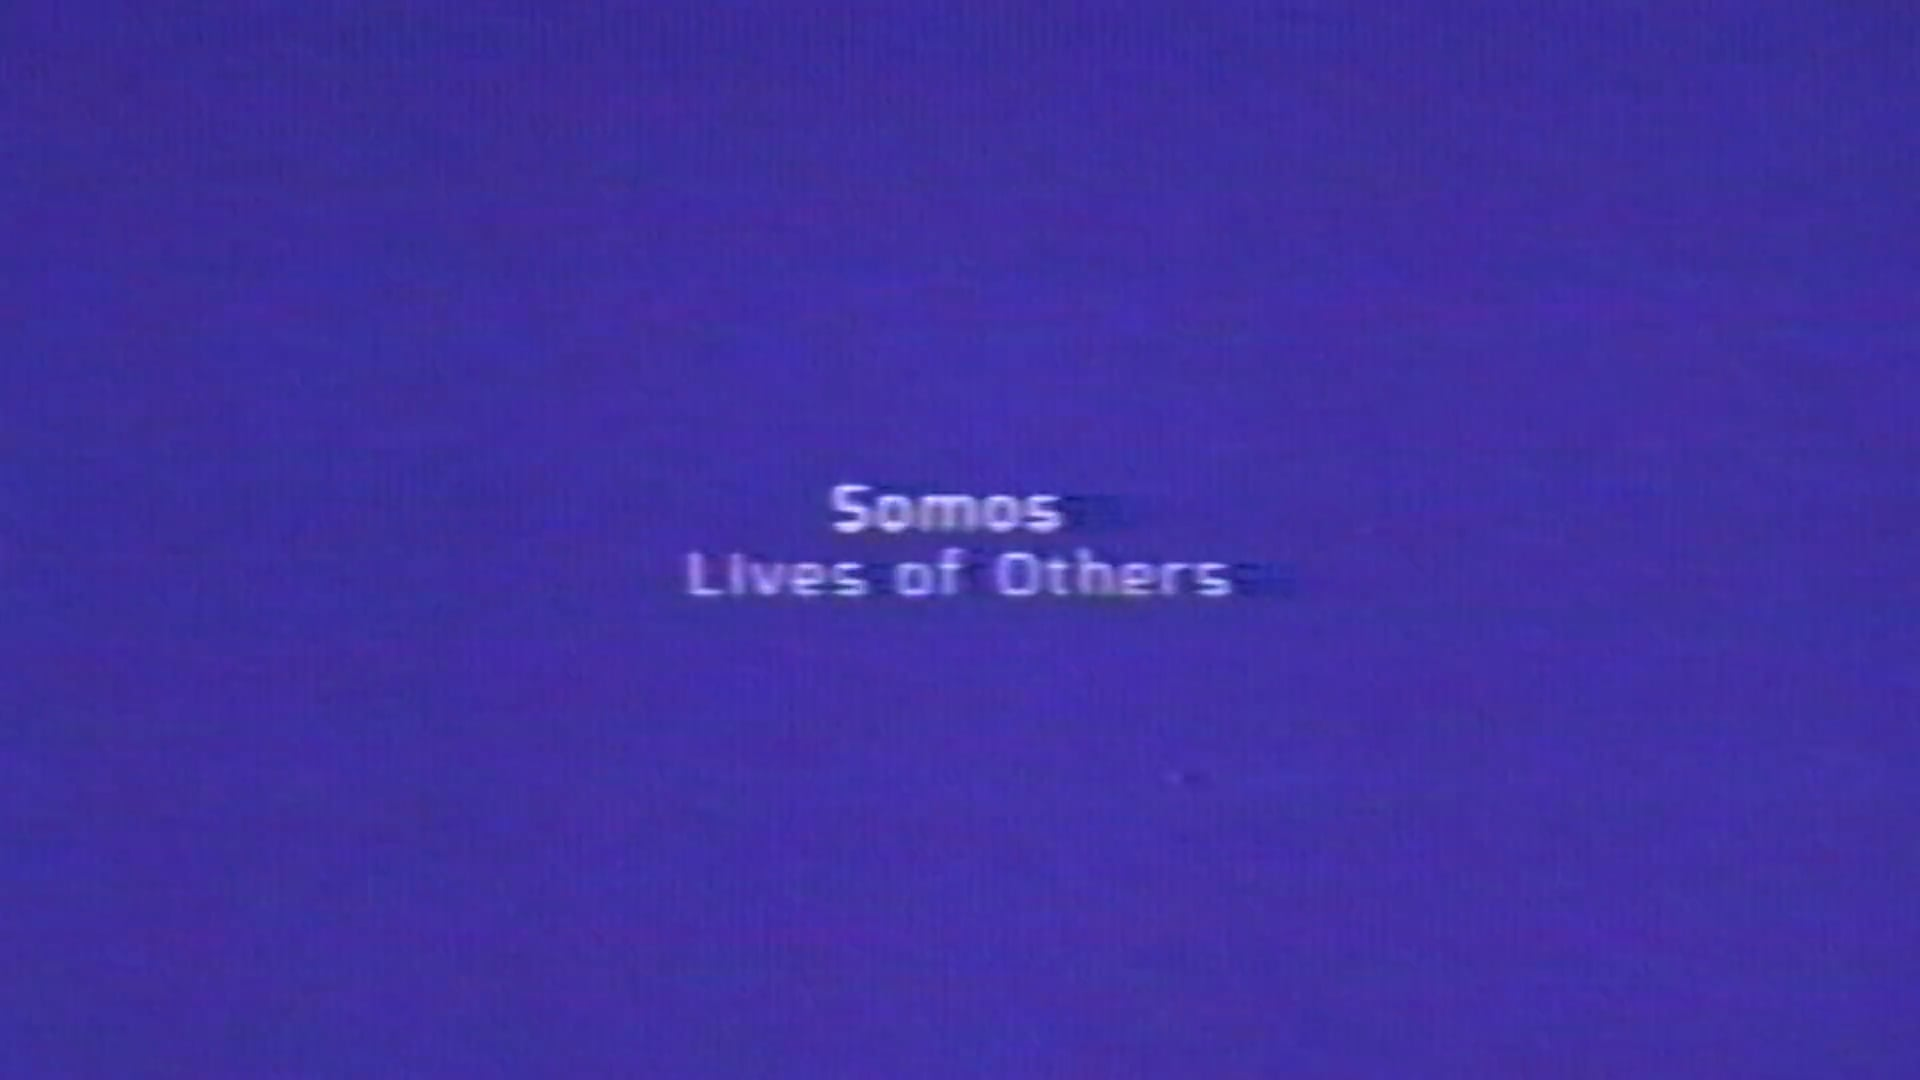 SOMOS - LIVES OF OTHERS